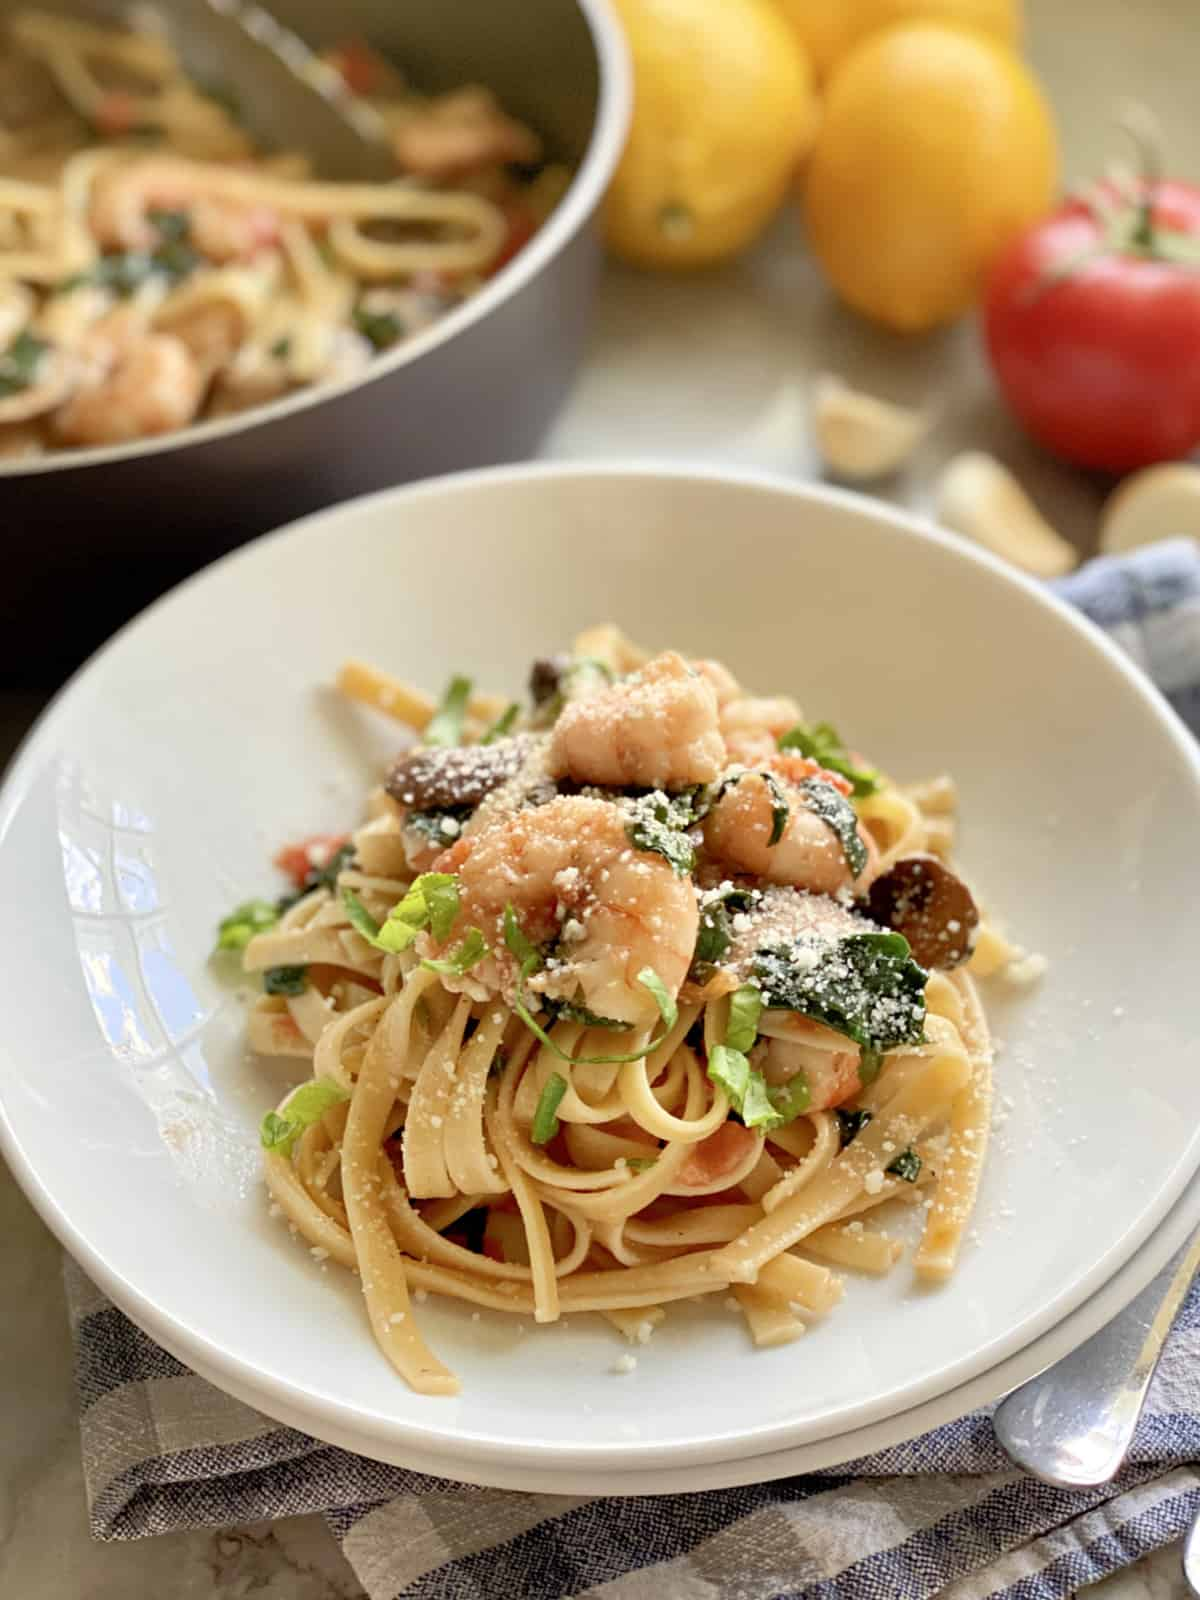 Linguini topped with shrimp nestled in a white bowl.